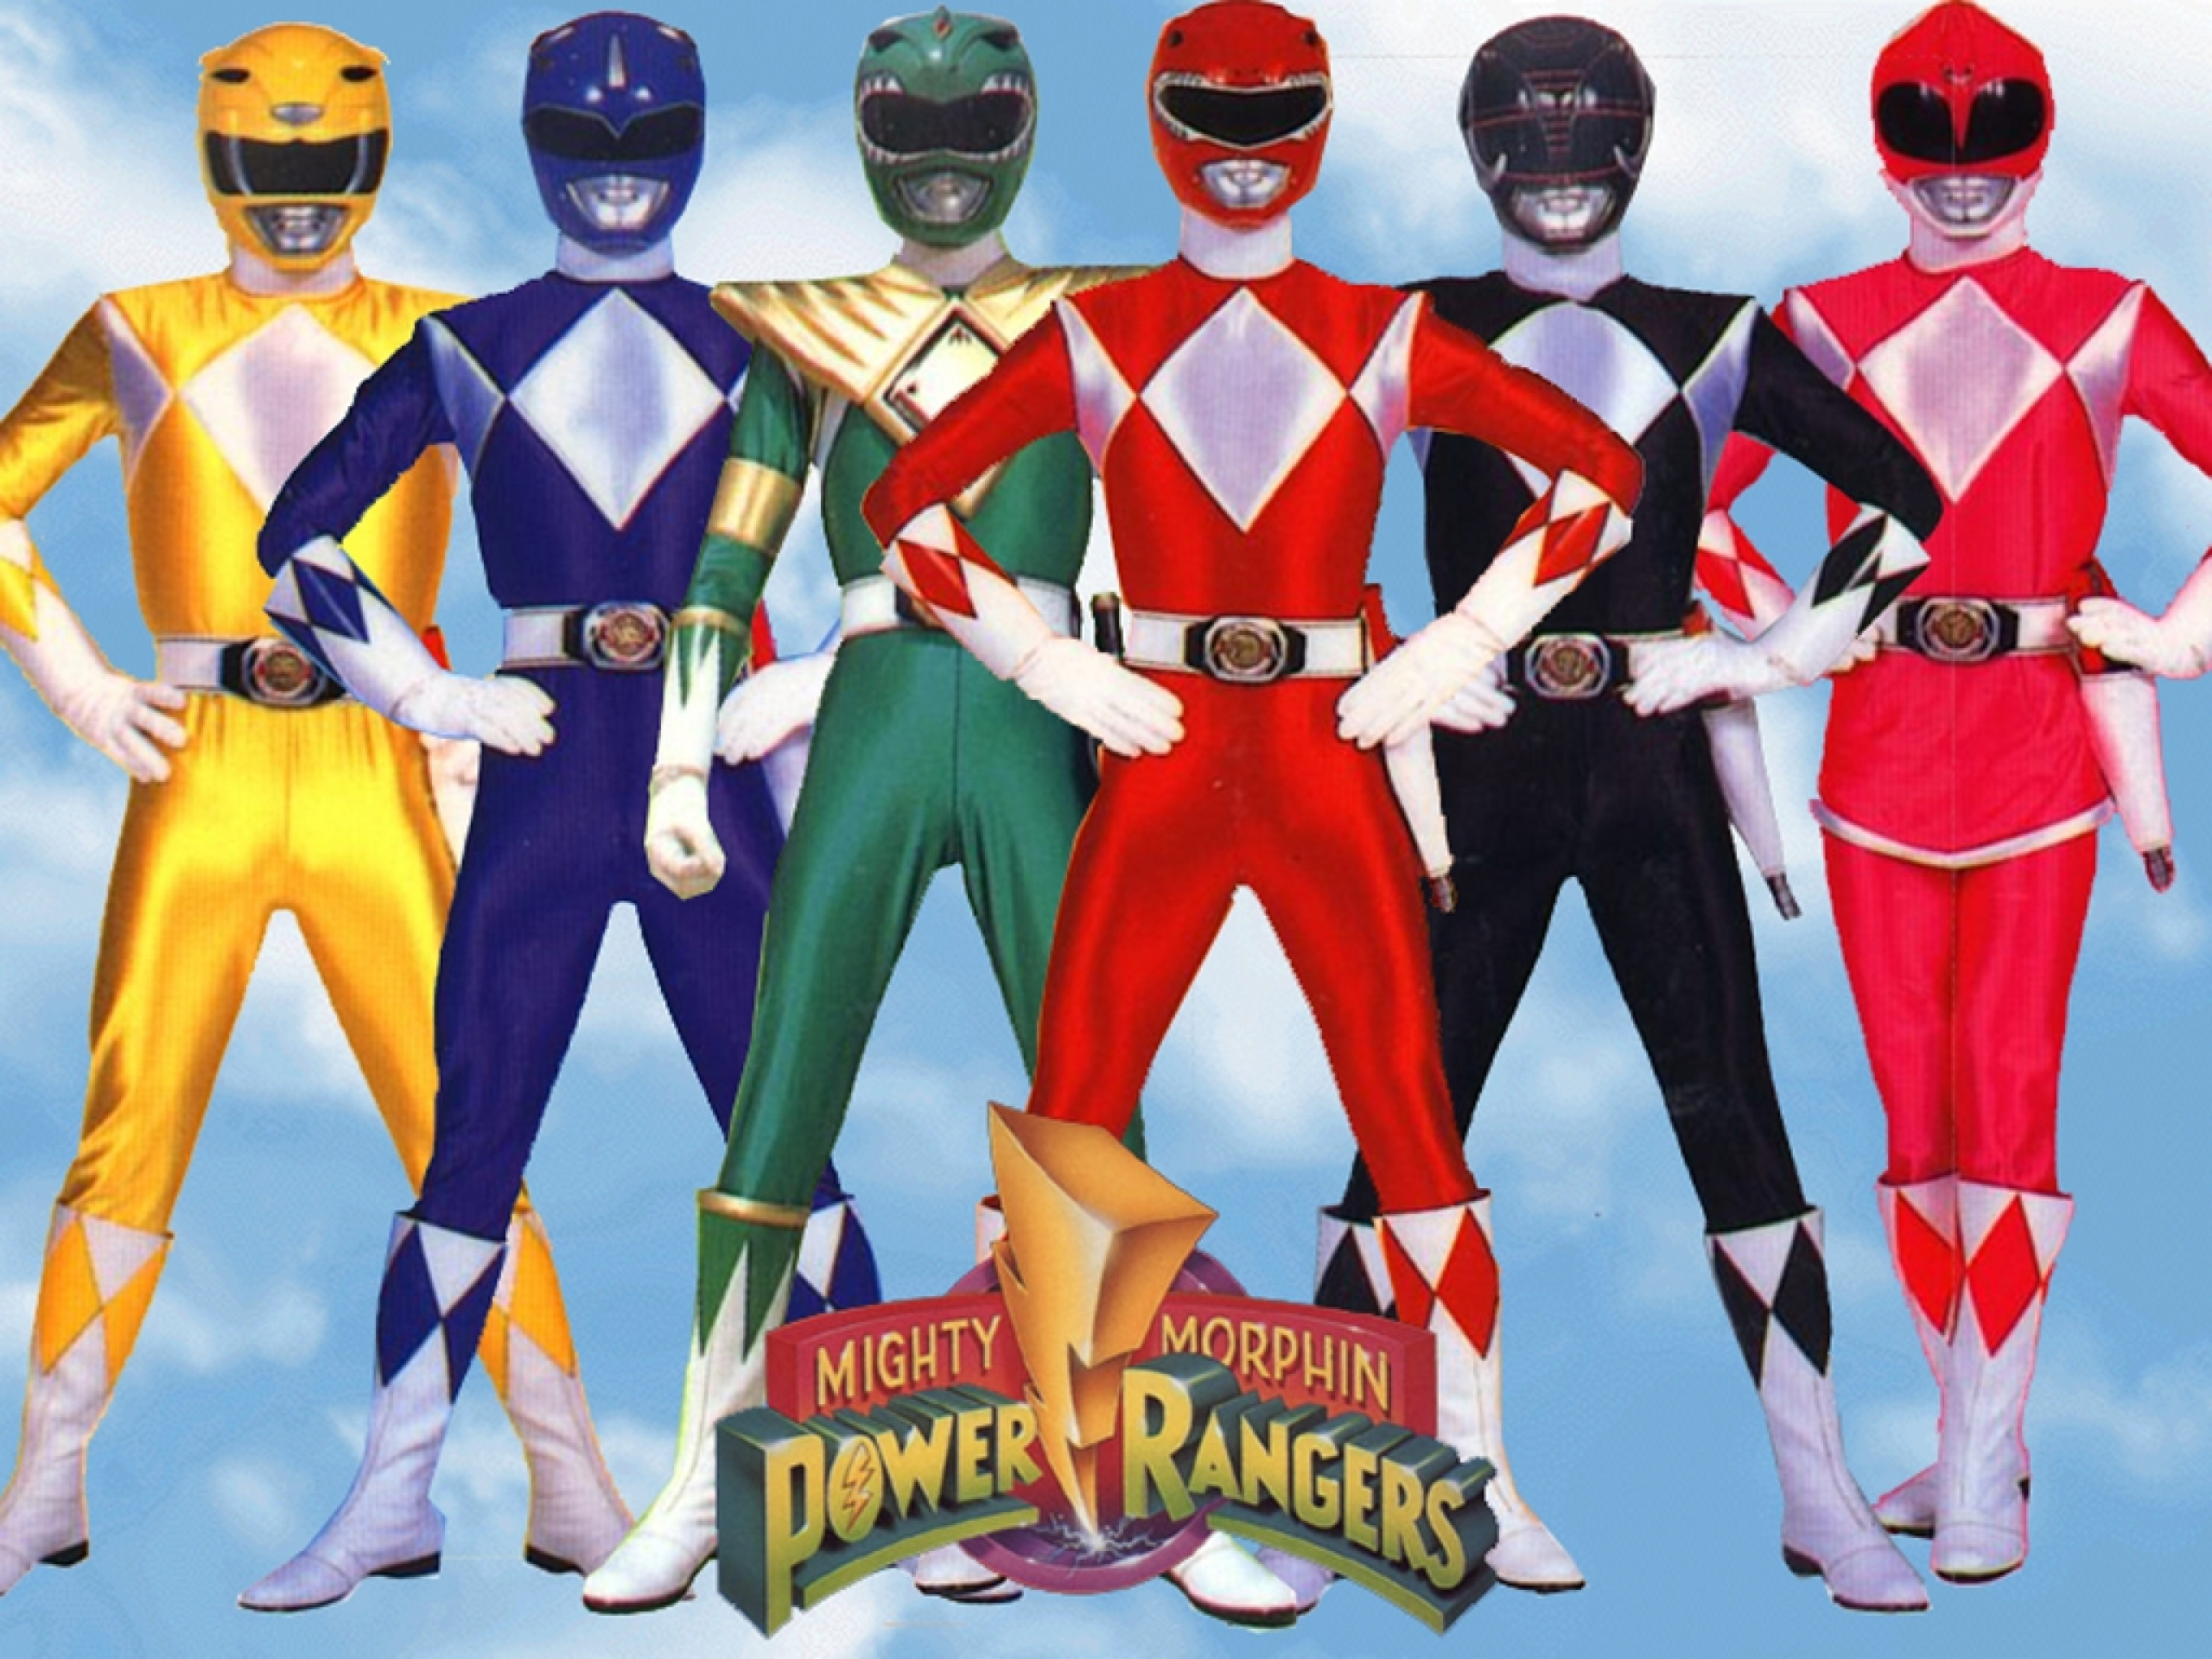 Po po power ranger pages to color - Mighty Morphin Power Rangers Wallpaper Walljpeg Com